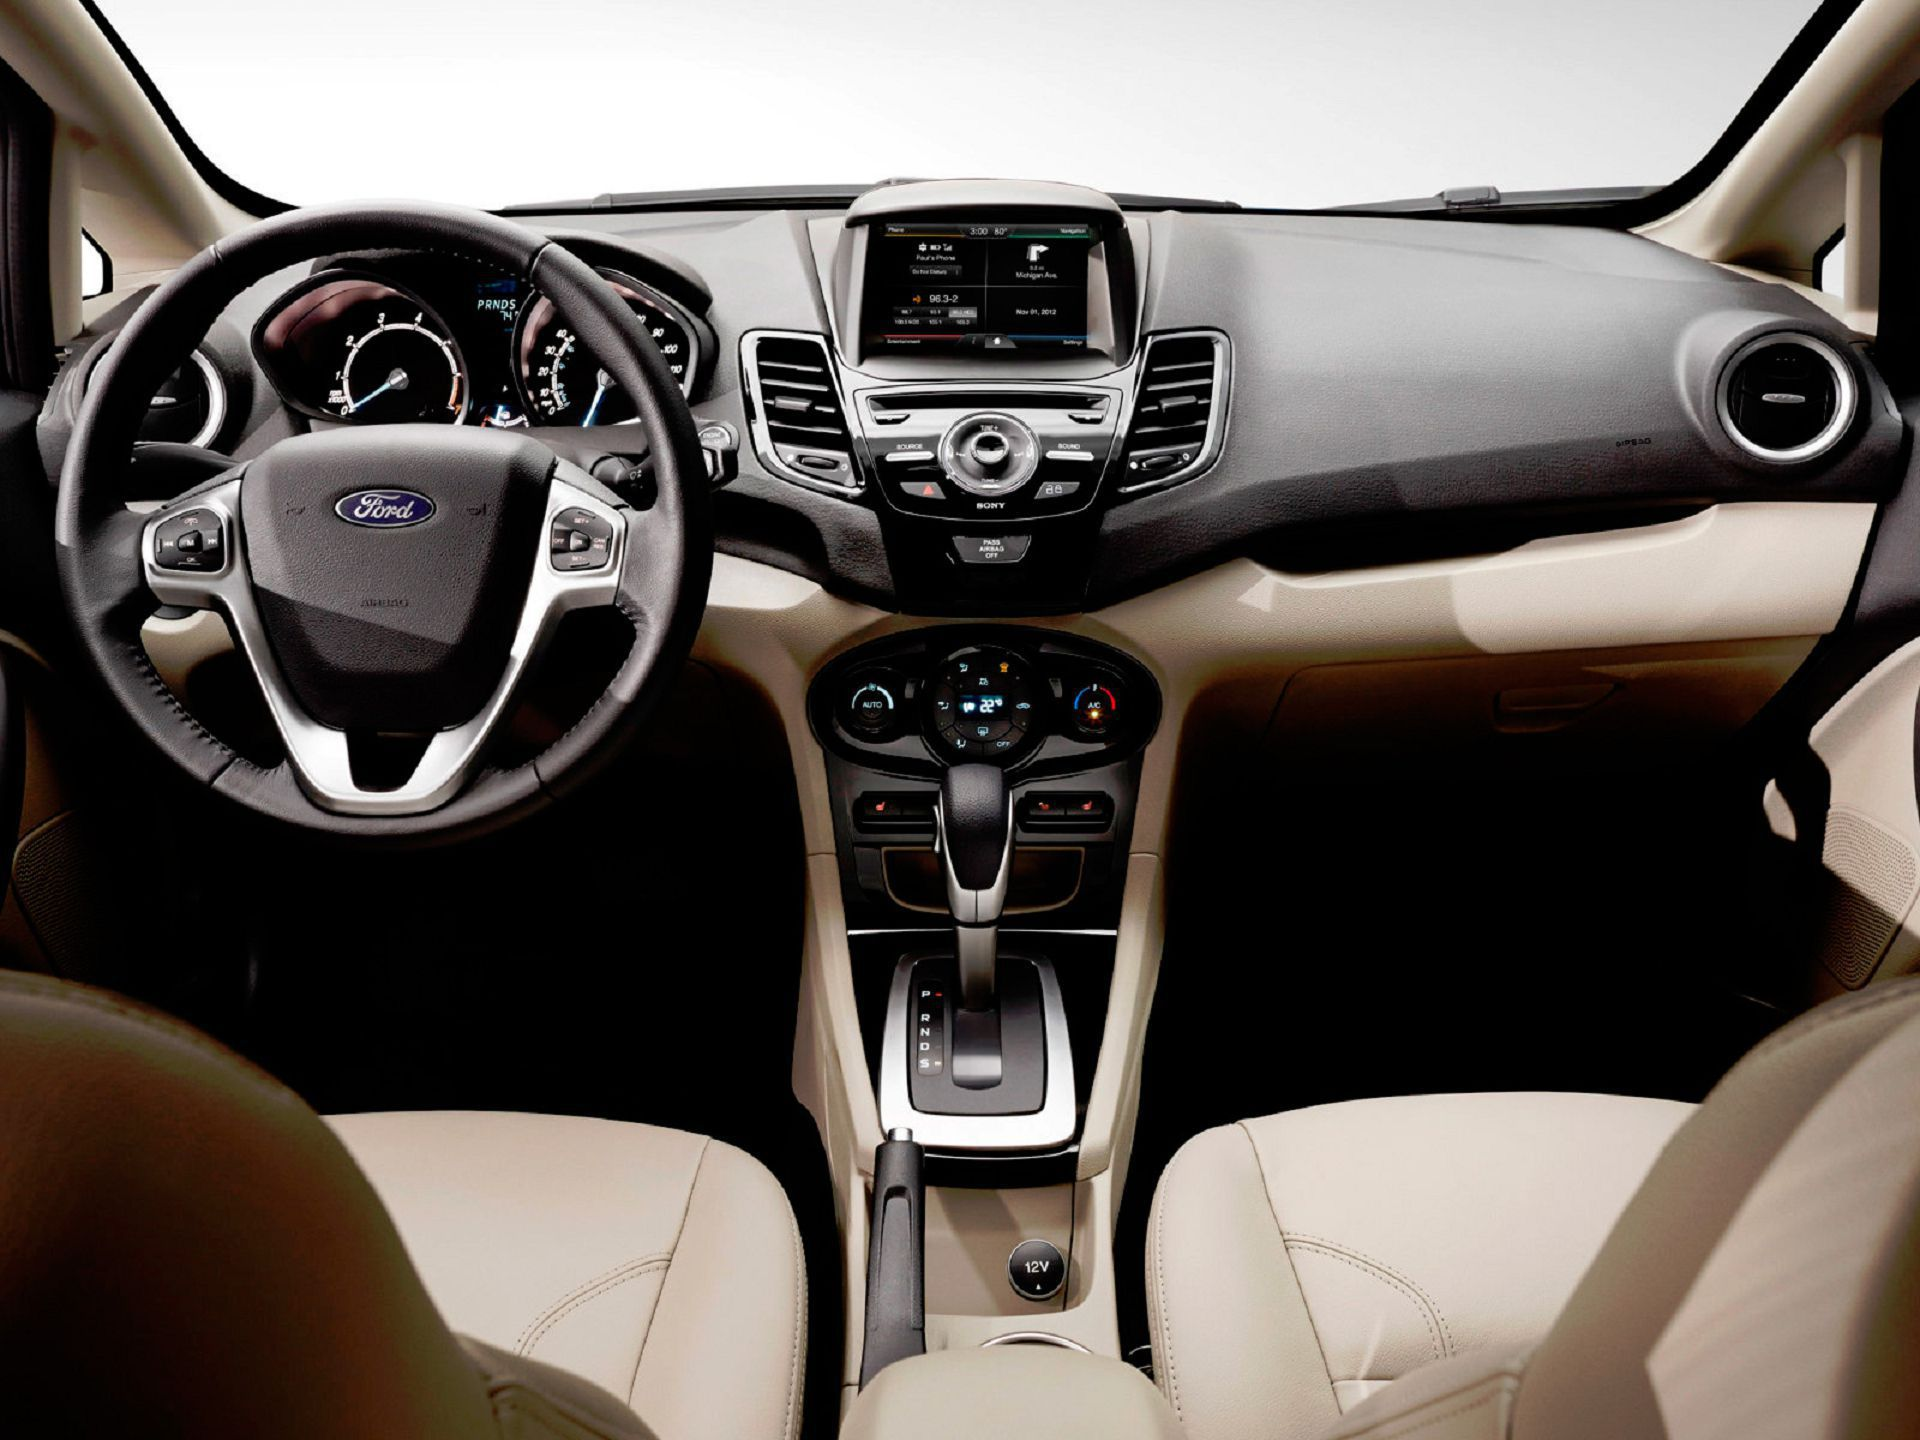 Ford Fiesta High Quality Wallpapers